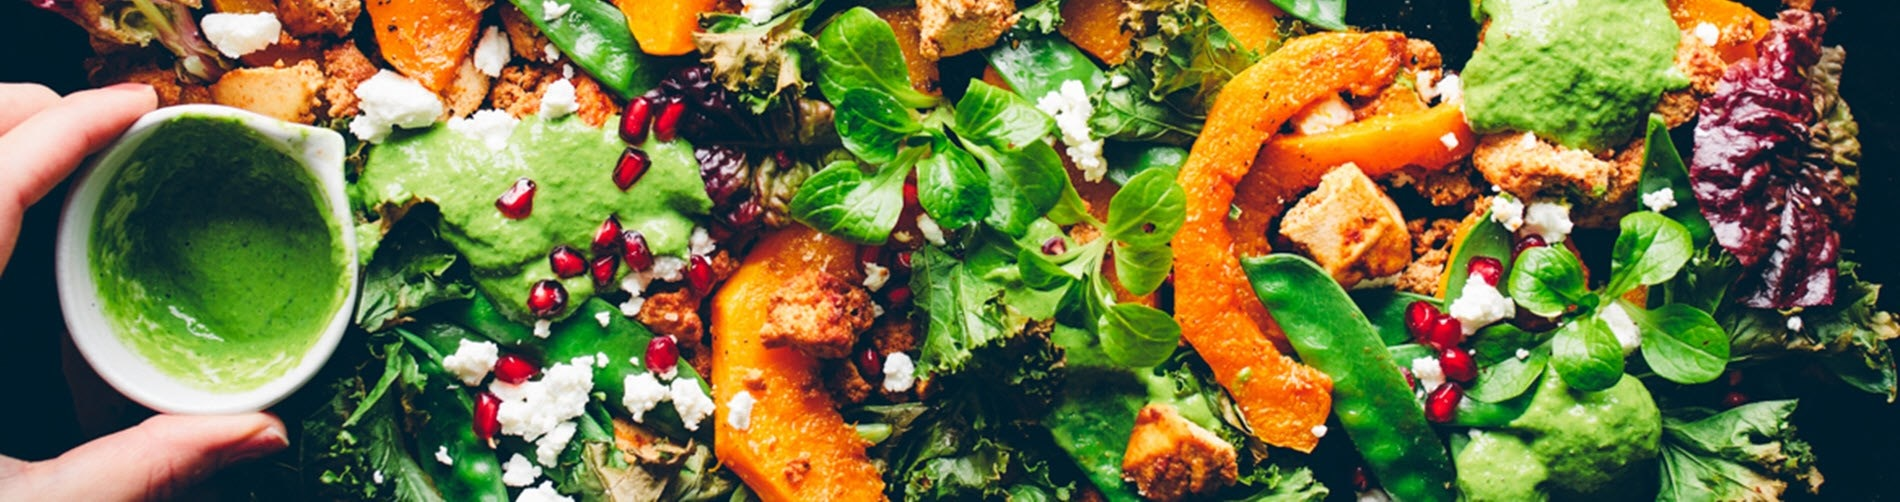 Roasted Pumpkin Tray with Green Harissa